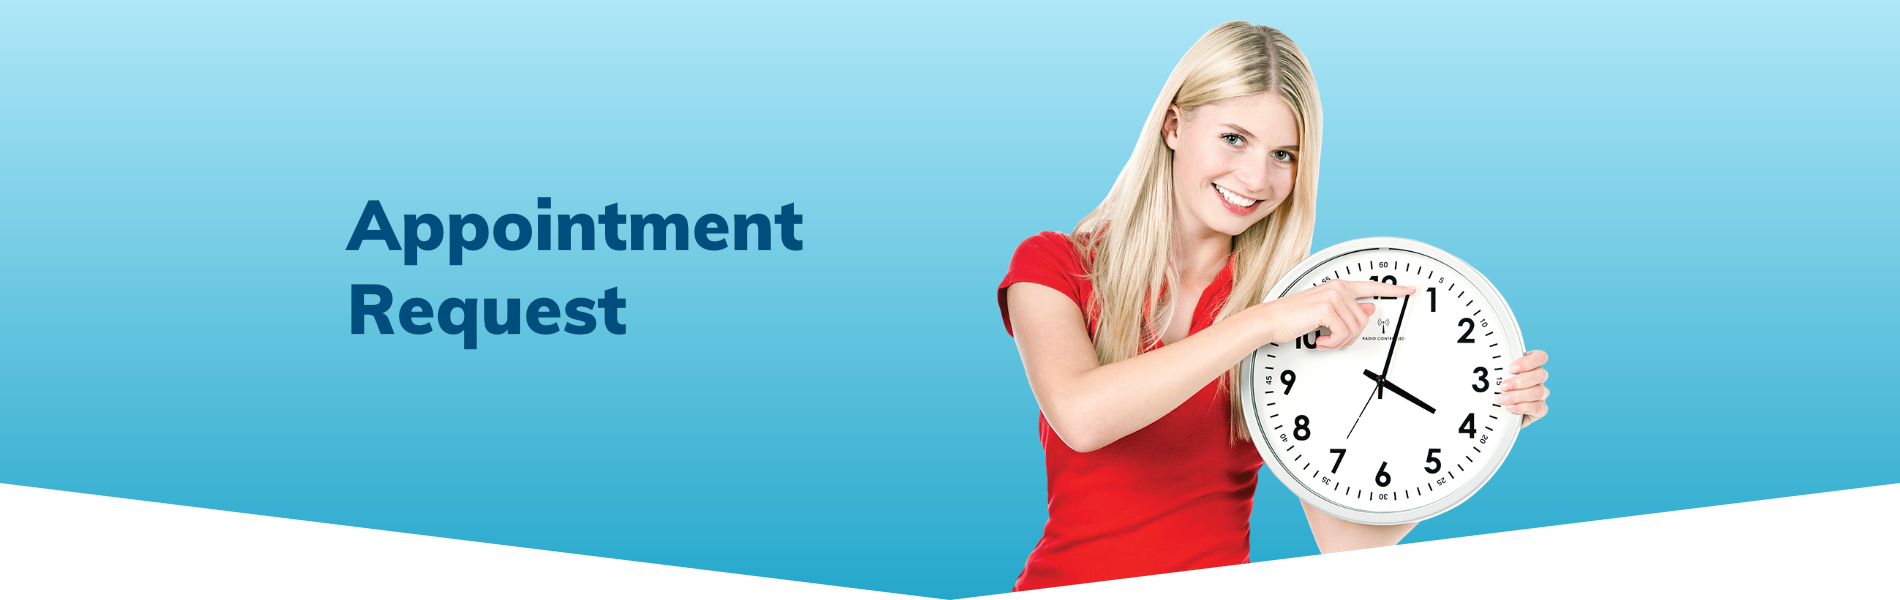 appointment-banner